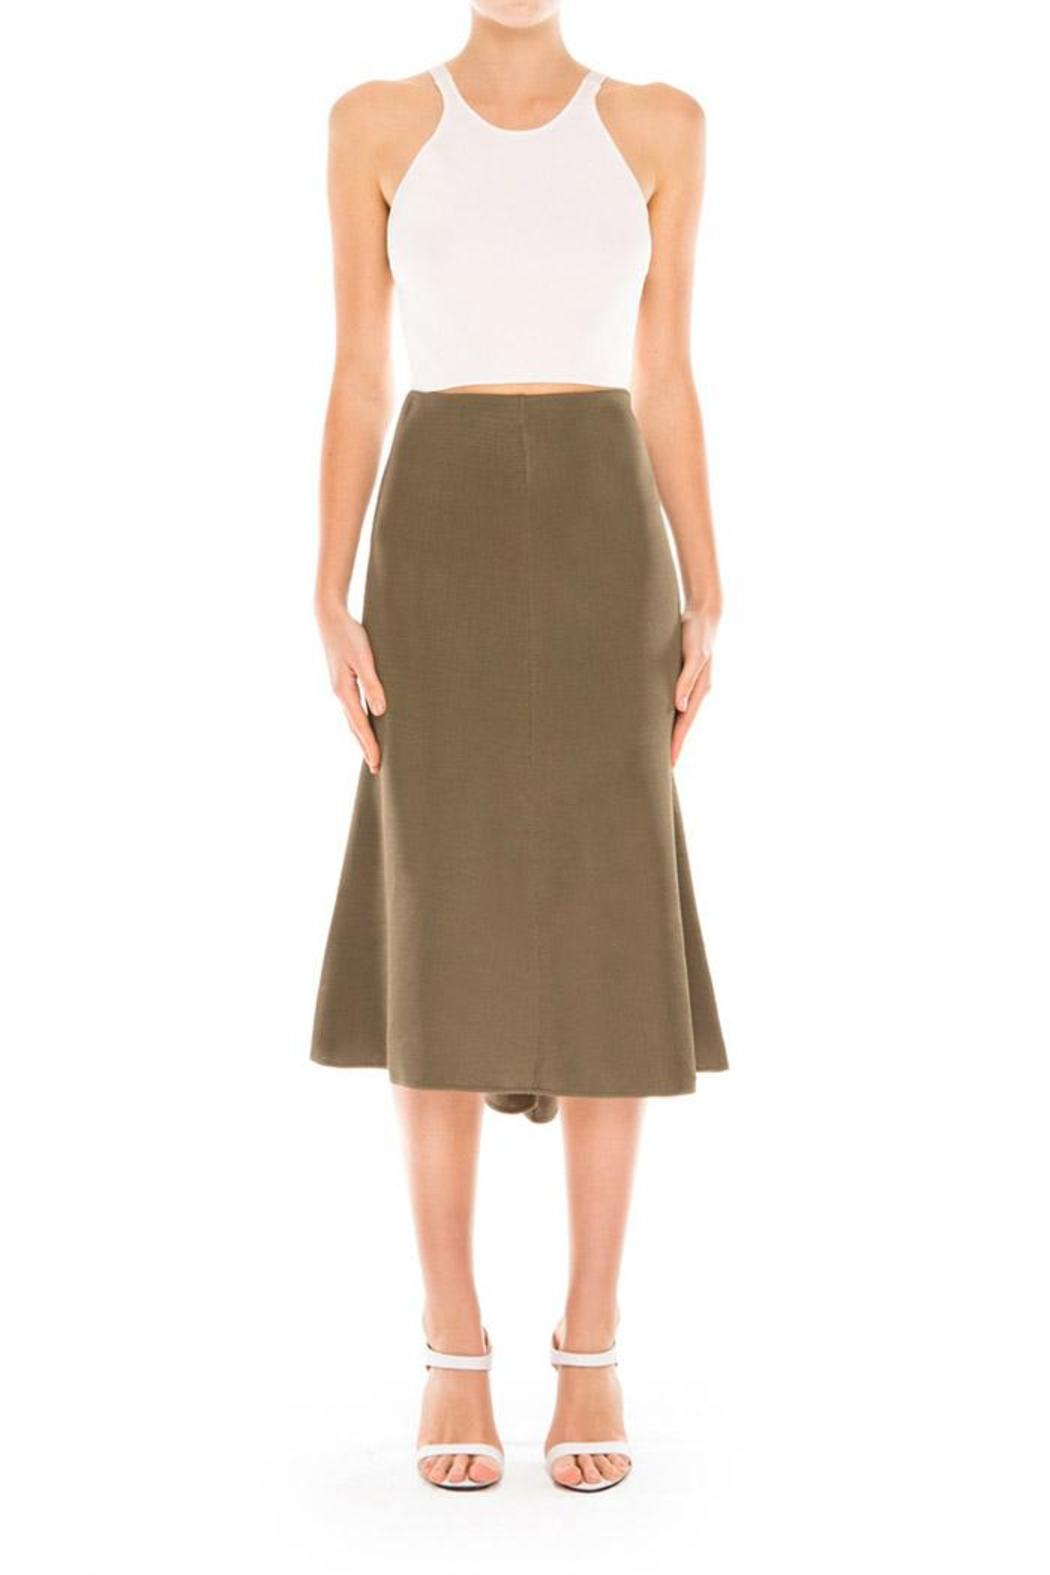 47cdc8c1d65 C/MEO COLLECTIVE New Guard Skirt from Louisiana by Duck & Dressing —  Shoptiques